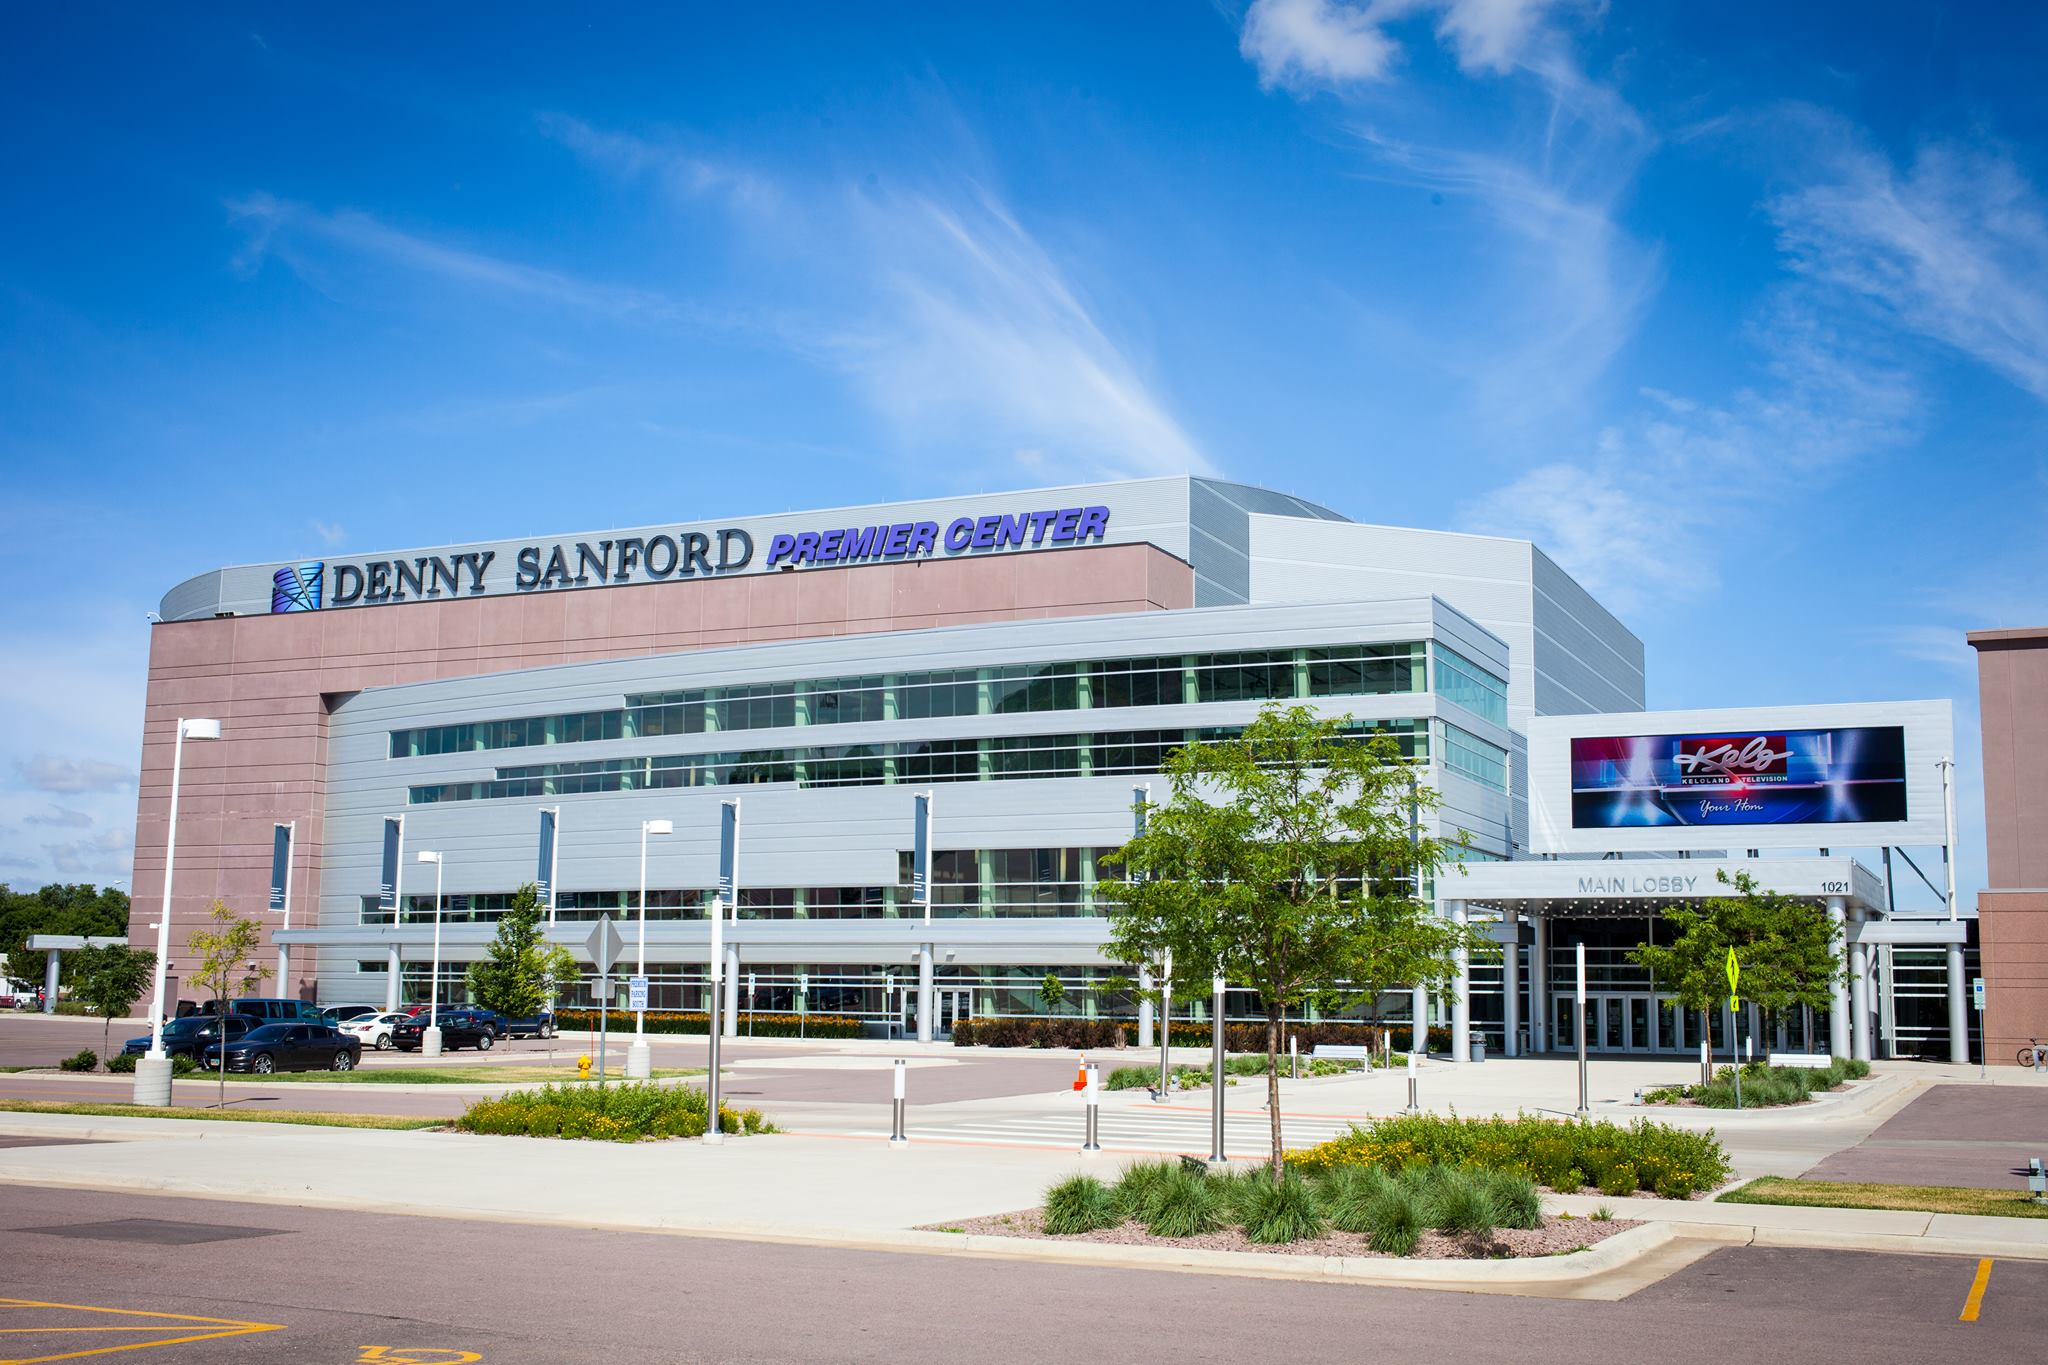 Denny Sanford Premier Center Arena and Convention Center